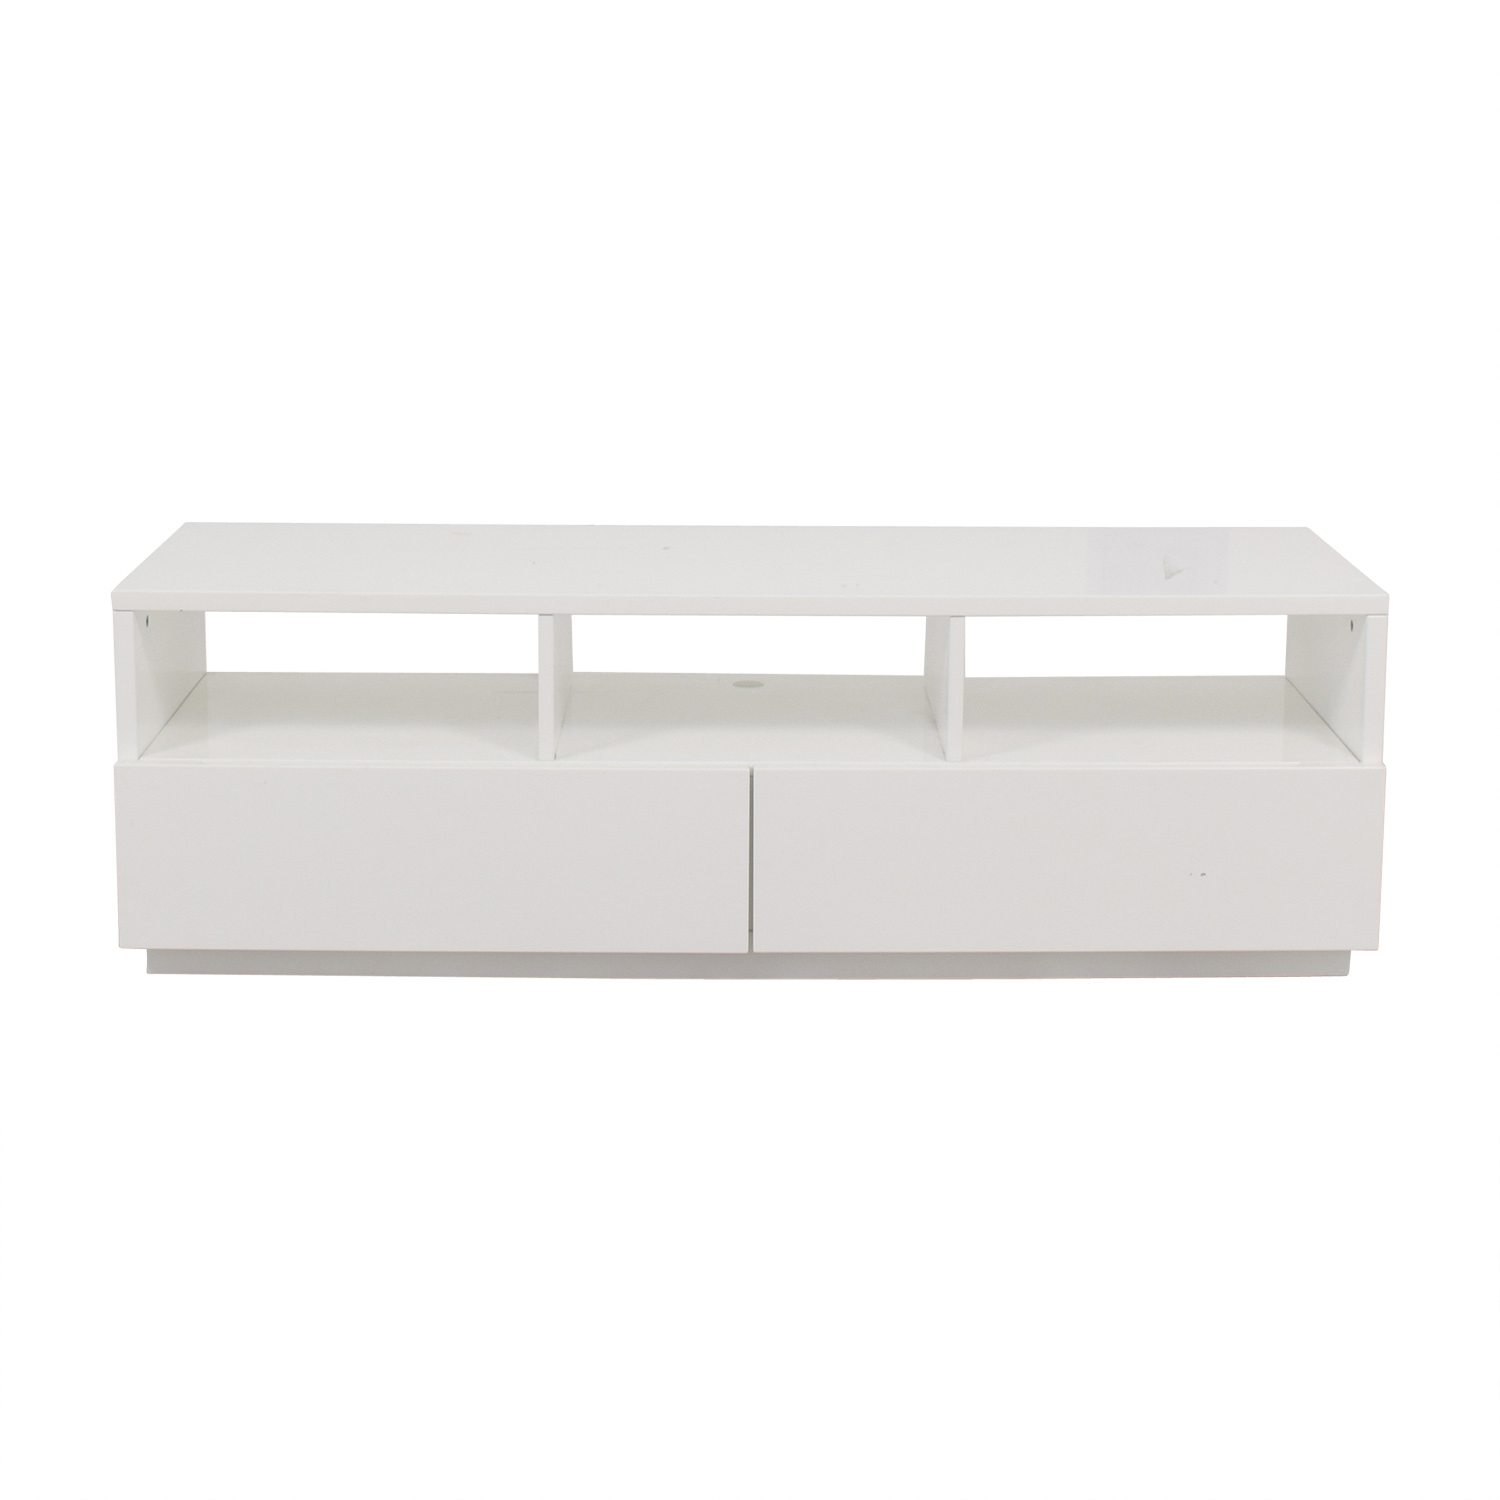 West Elm West Elm Chill White Media Unit used